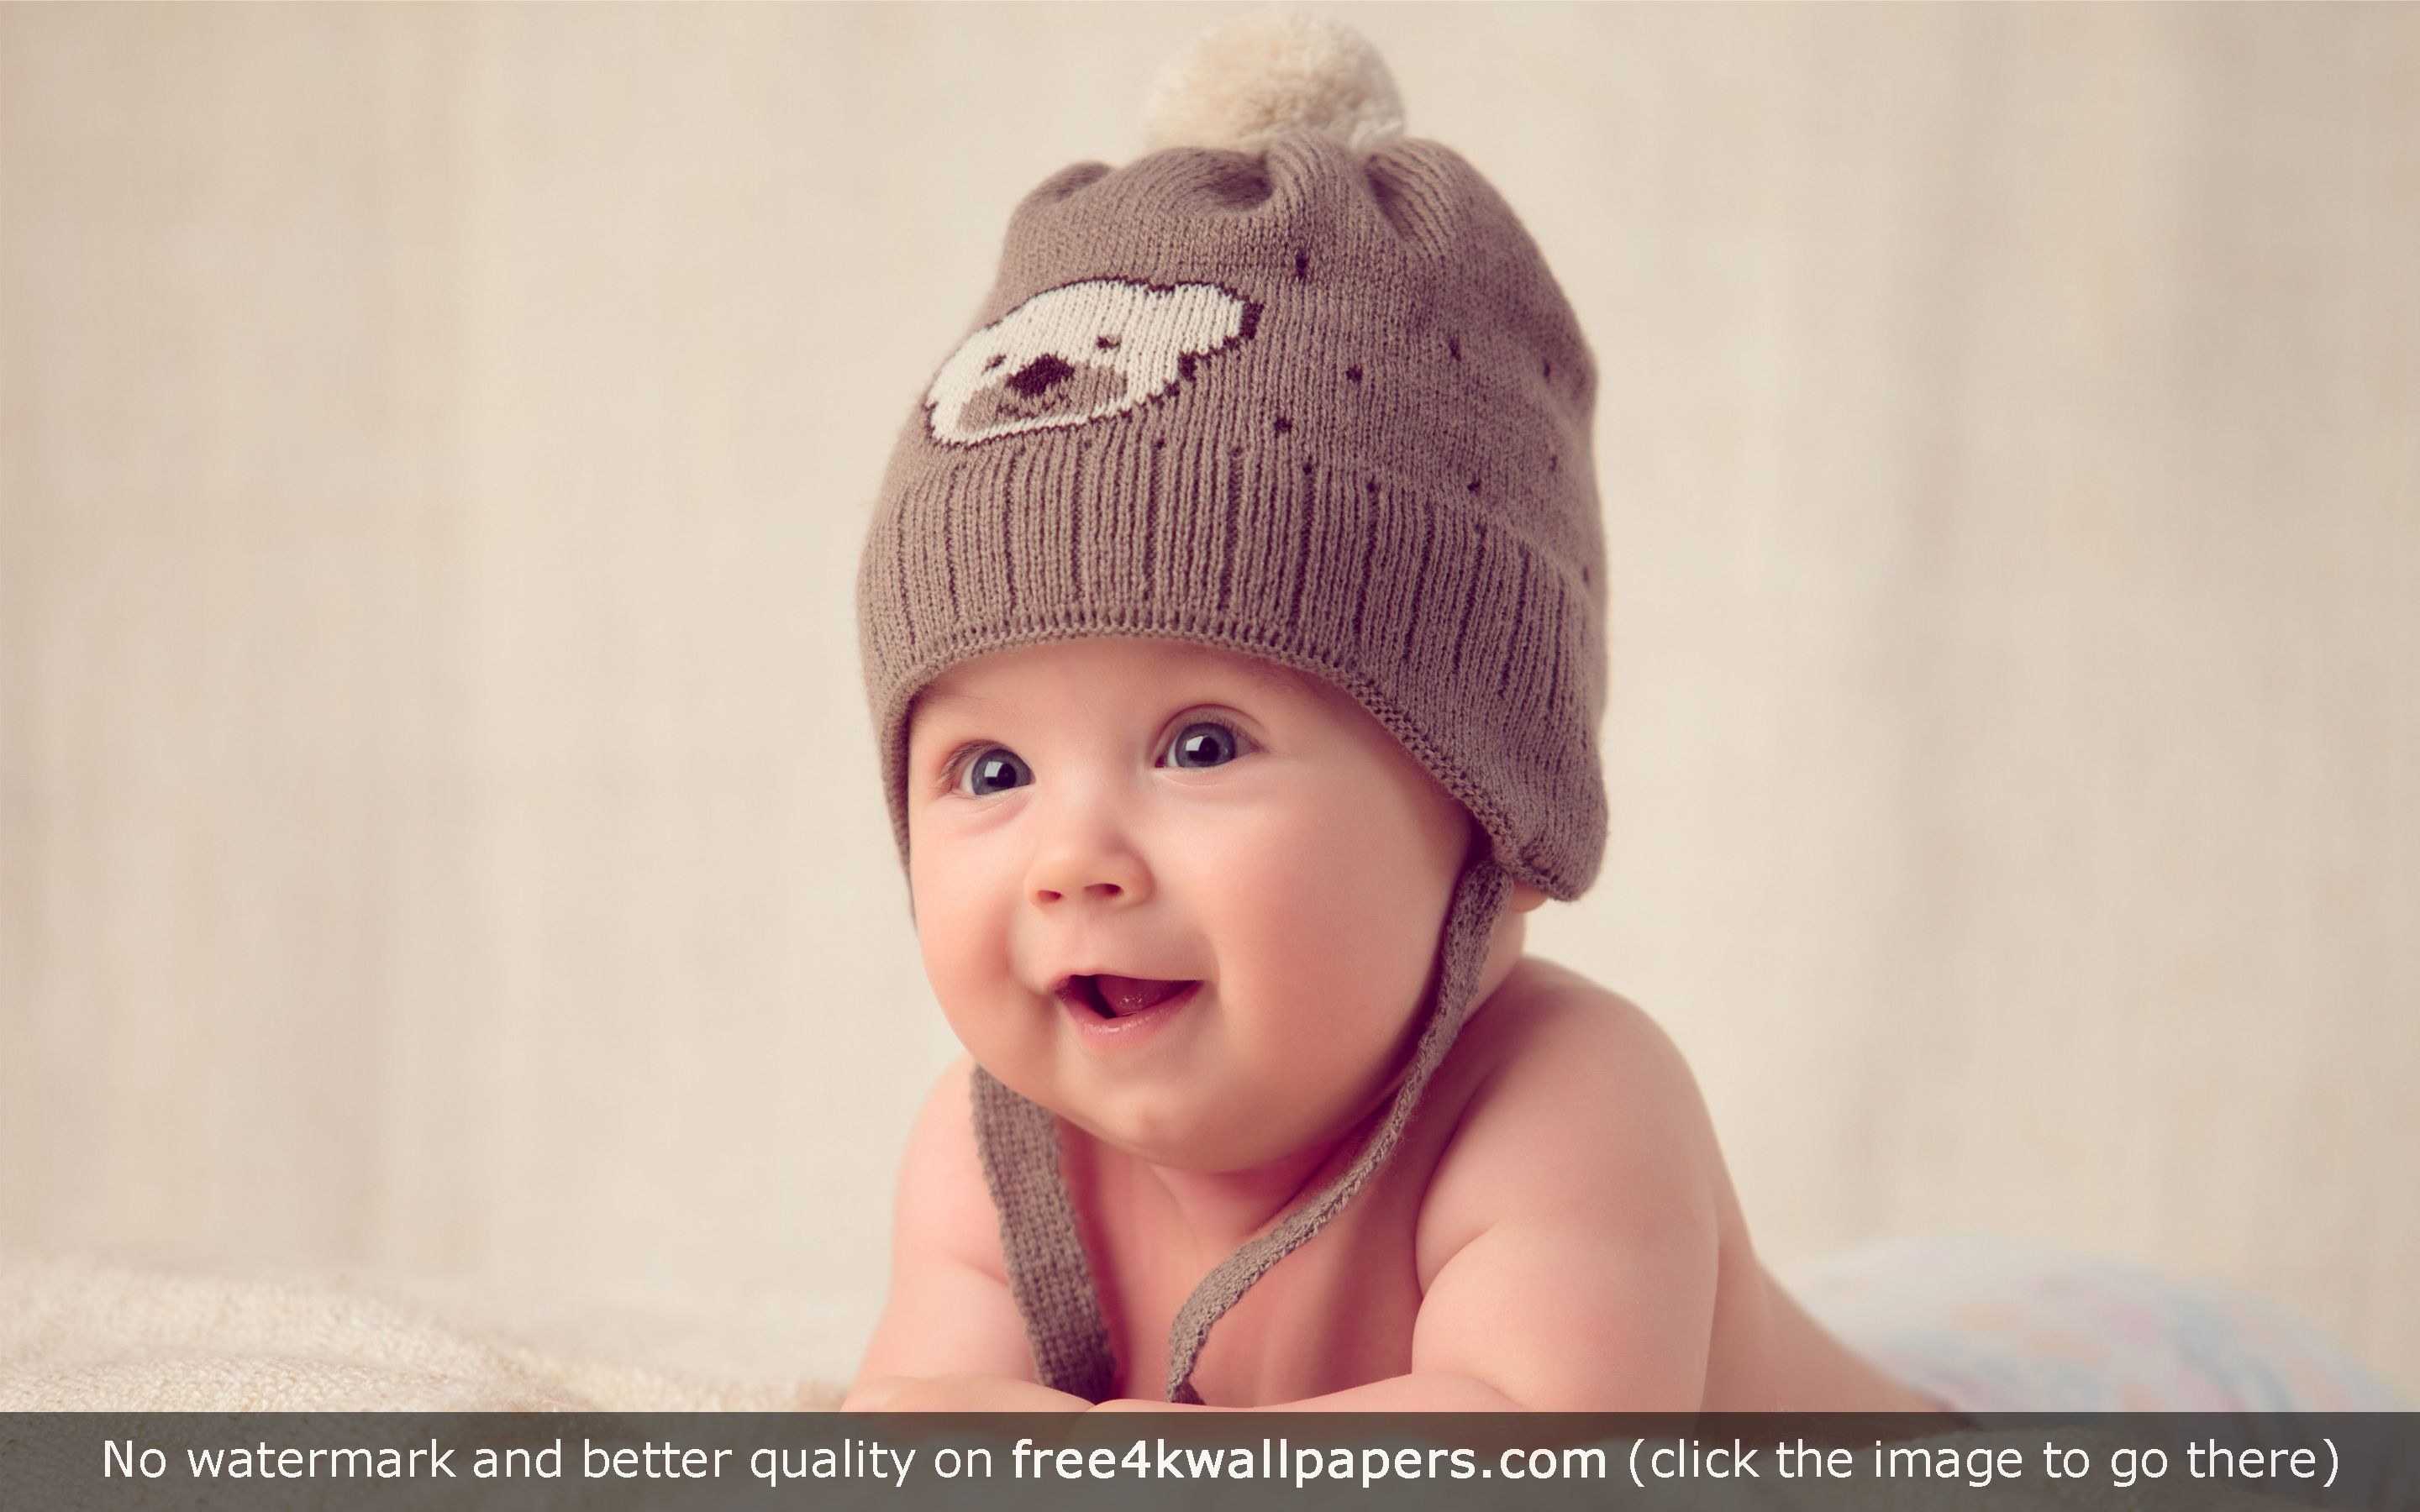 Cute Baby Hat Cap Wallpaper Cute Baby Pictures Cute Baby Girl Photos Cute Baby Wallpaper